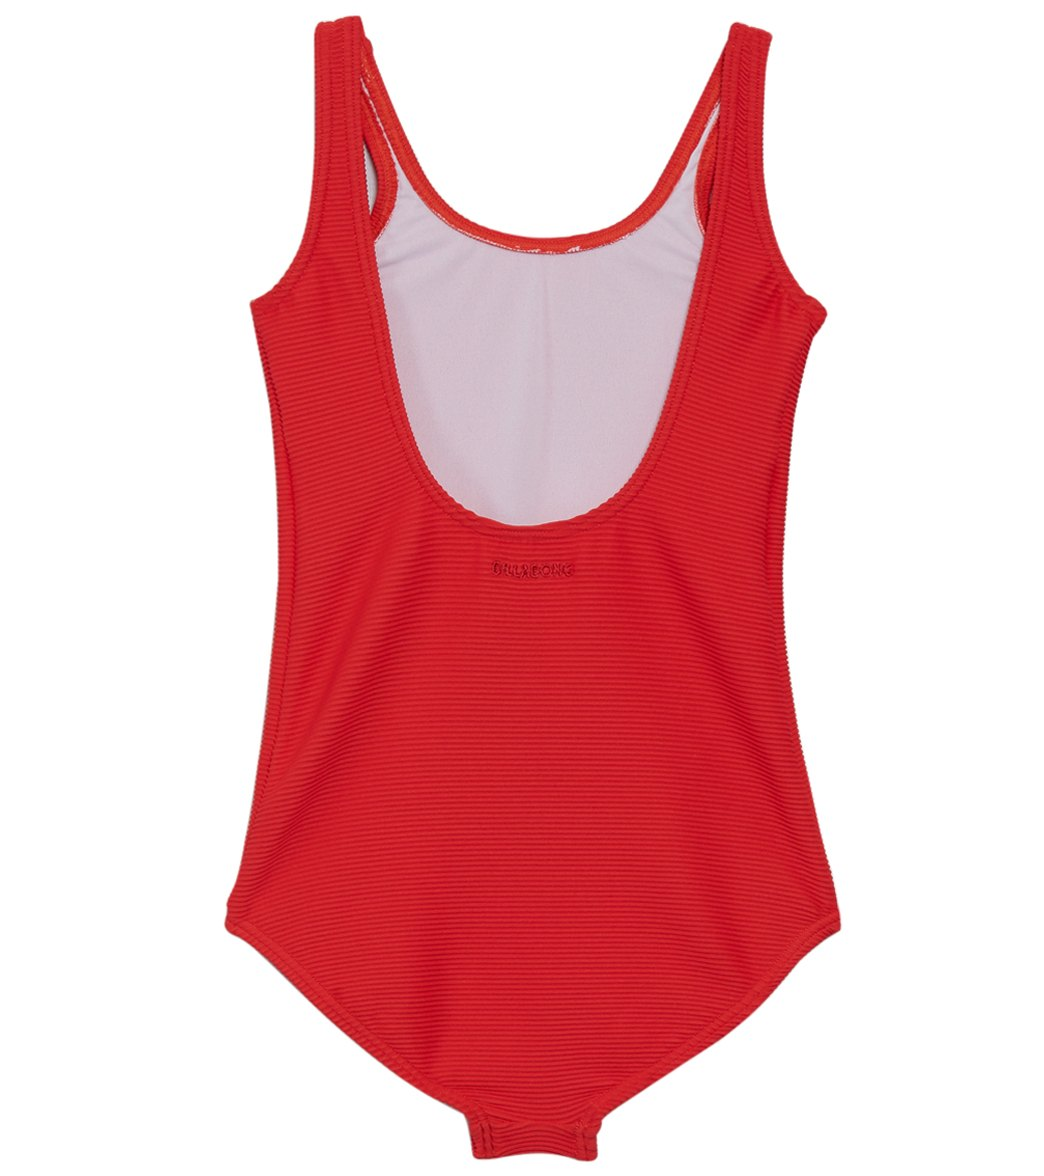 f7b5545c84aa Billabong Girls' Line Up One Piece Swimsuit (Little Kid, Big Kid) at ...